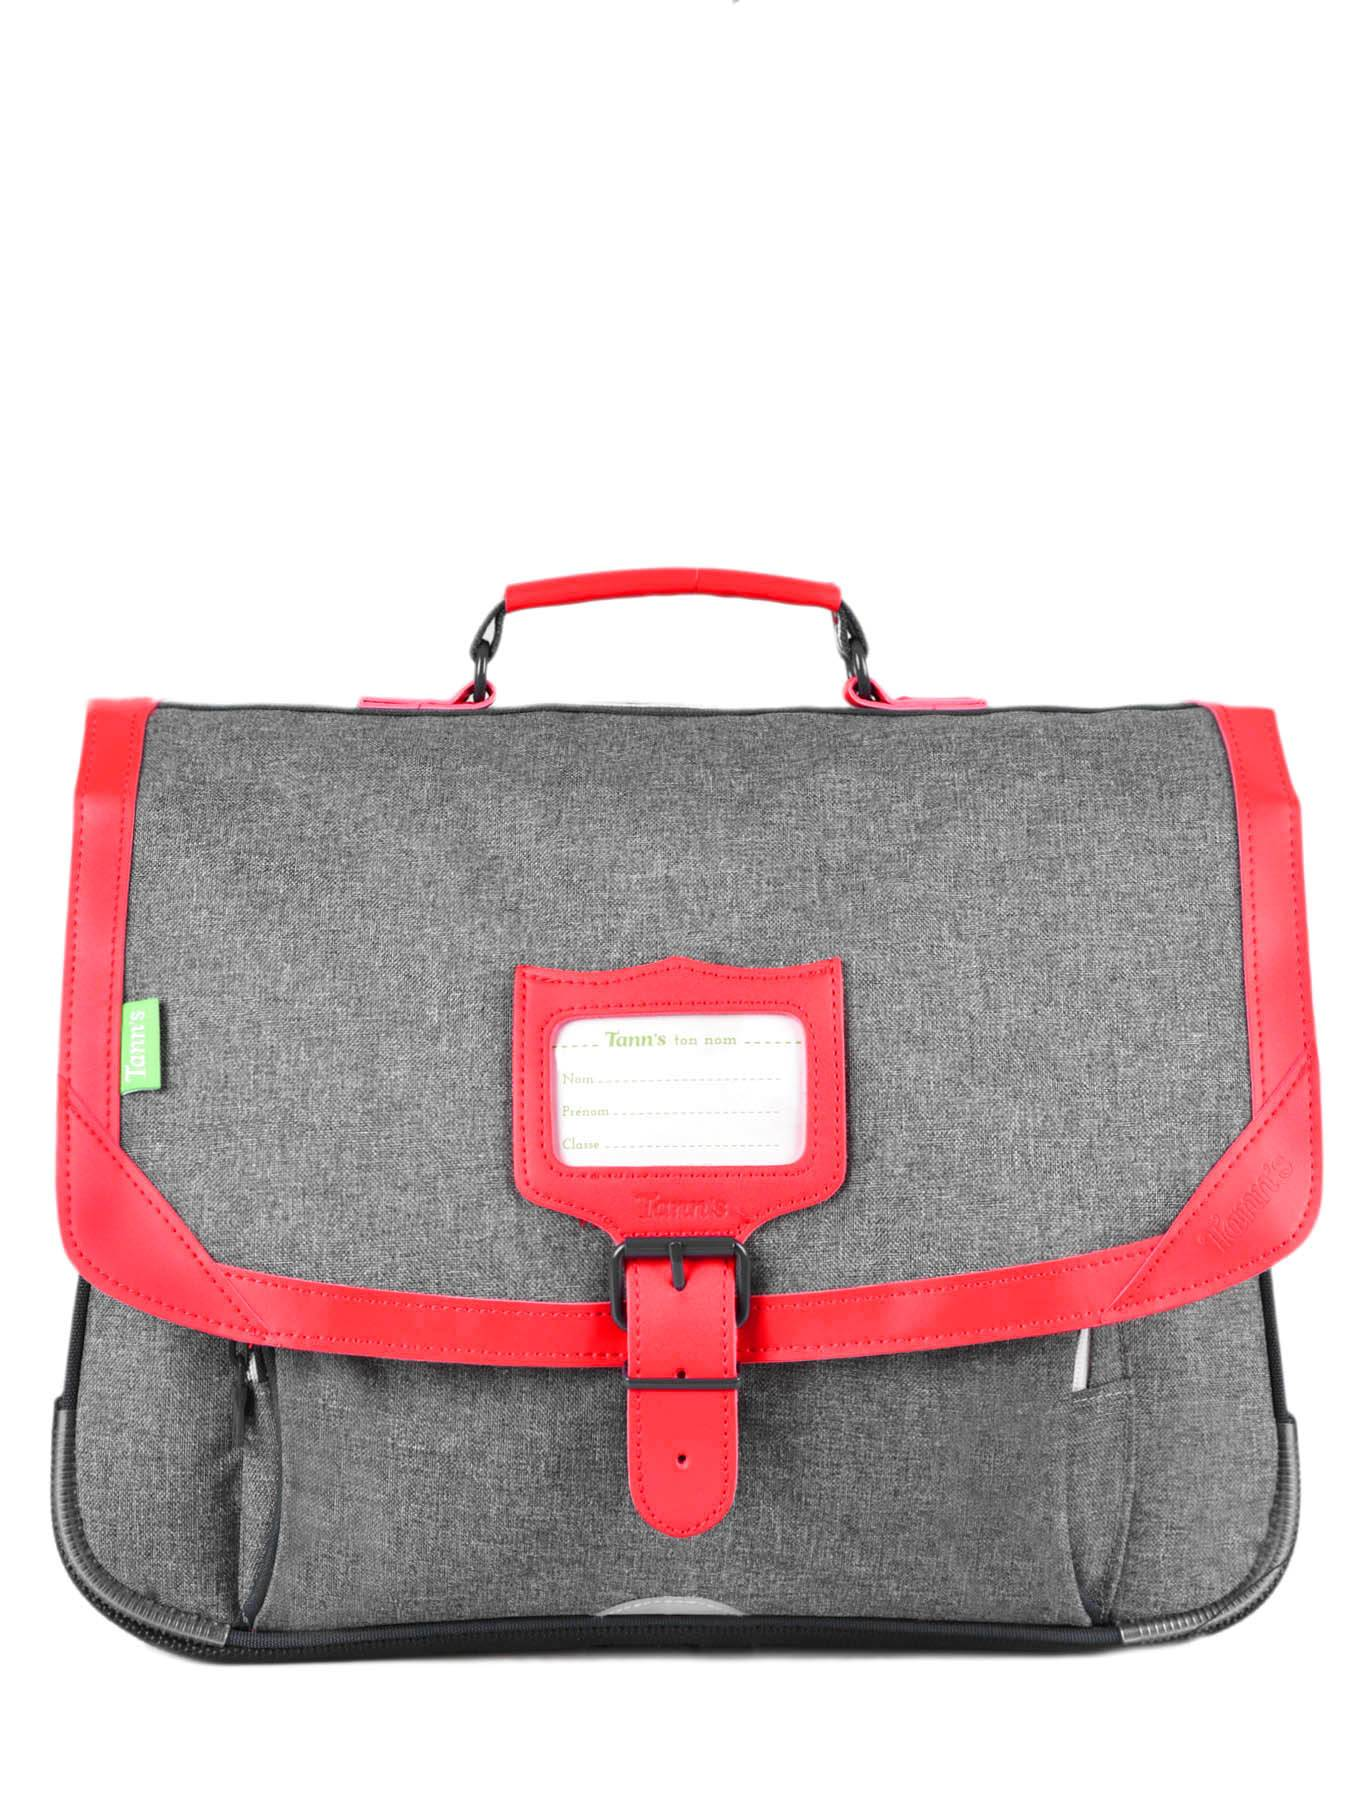 TANN'S Cartable 2 Compartiments Tann's Gris